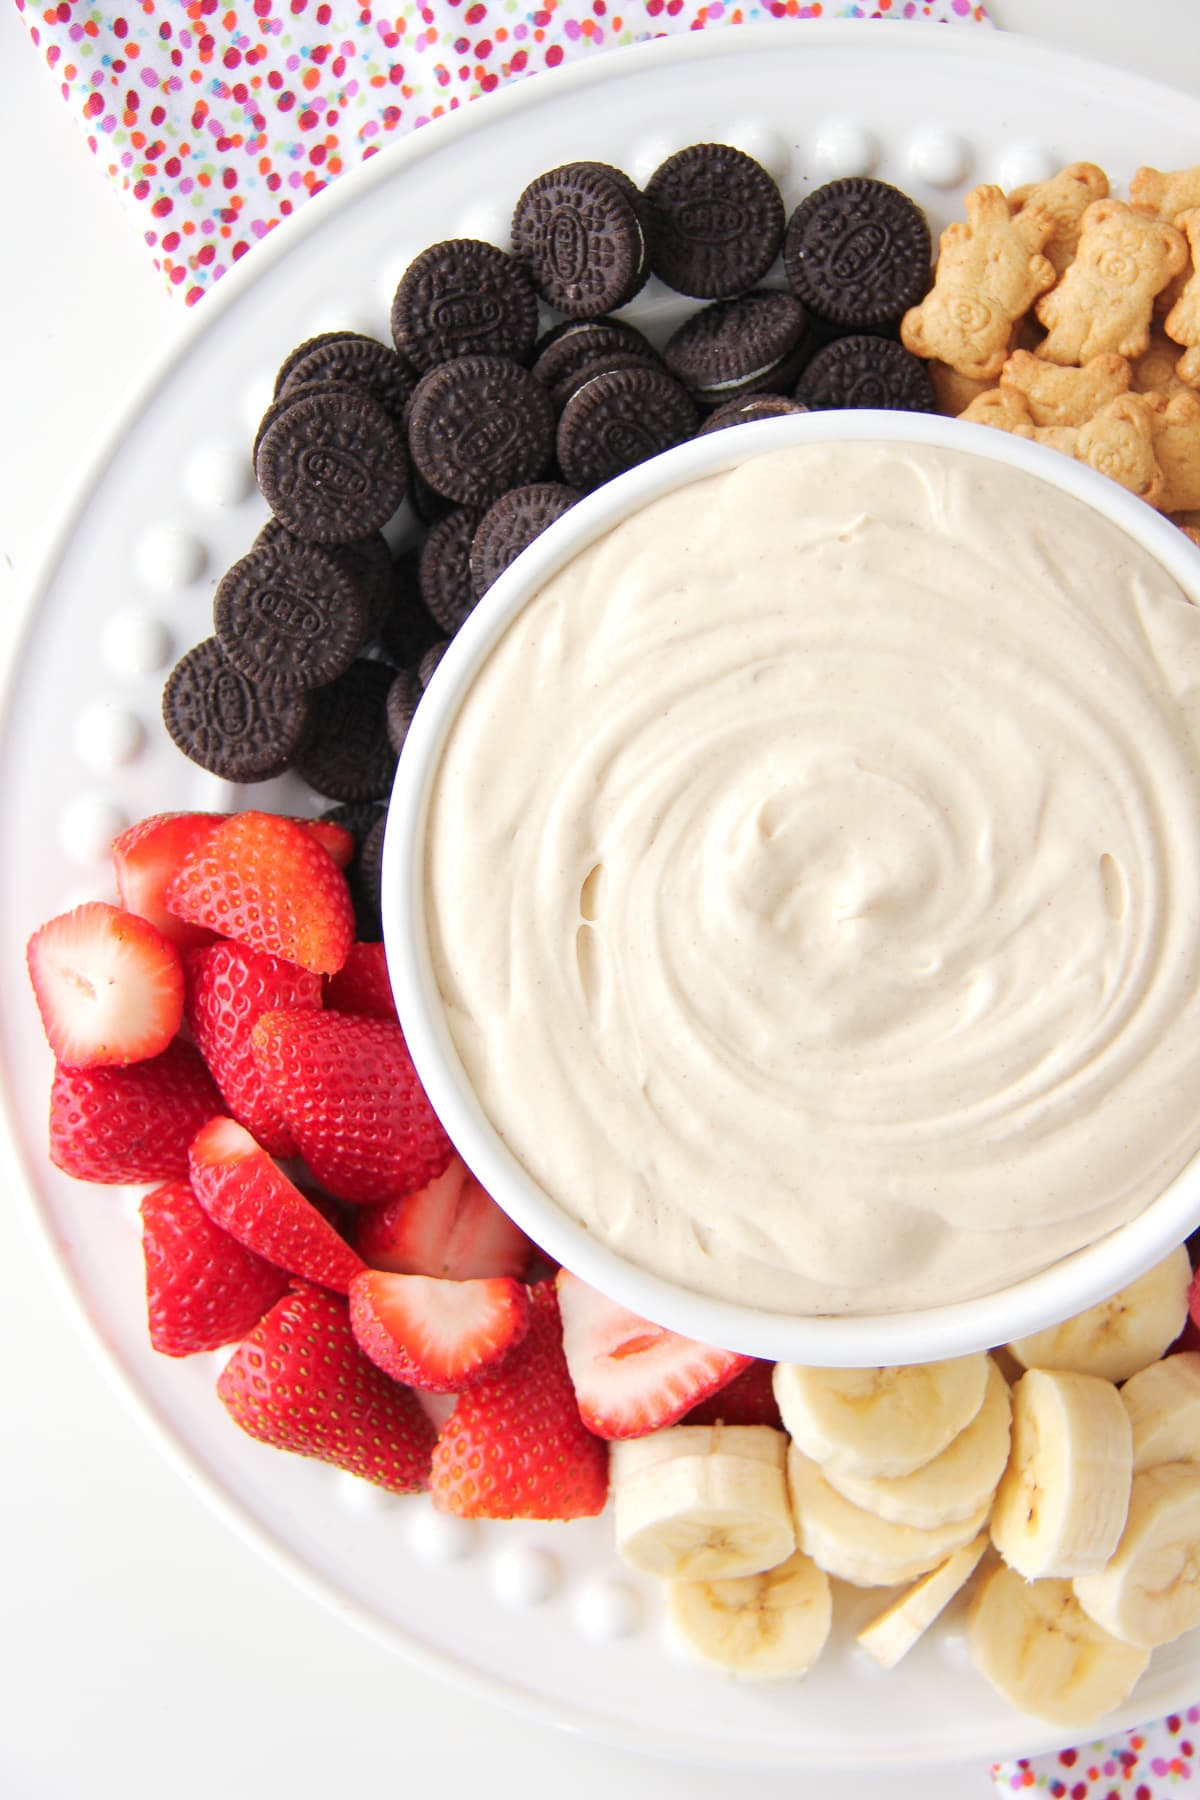 4 Ingredient Peanut Butter Marshmallow Fluff Dip